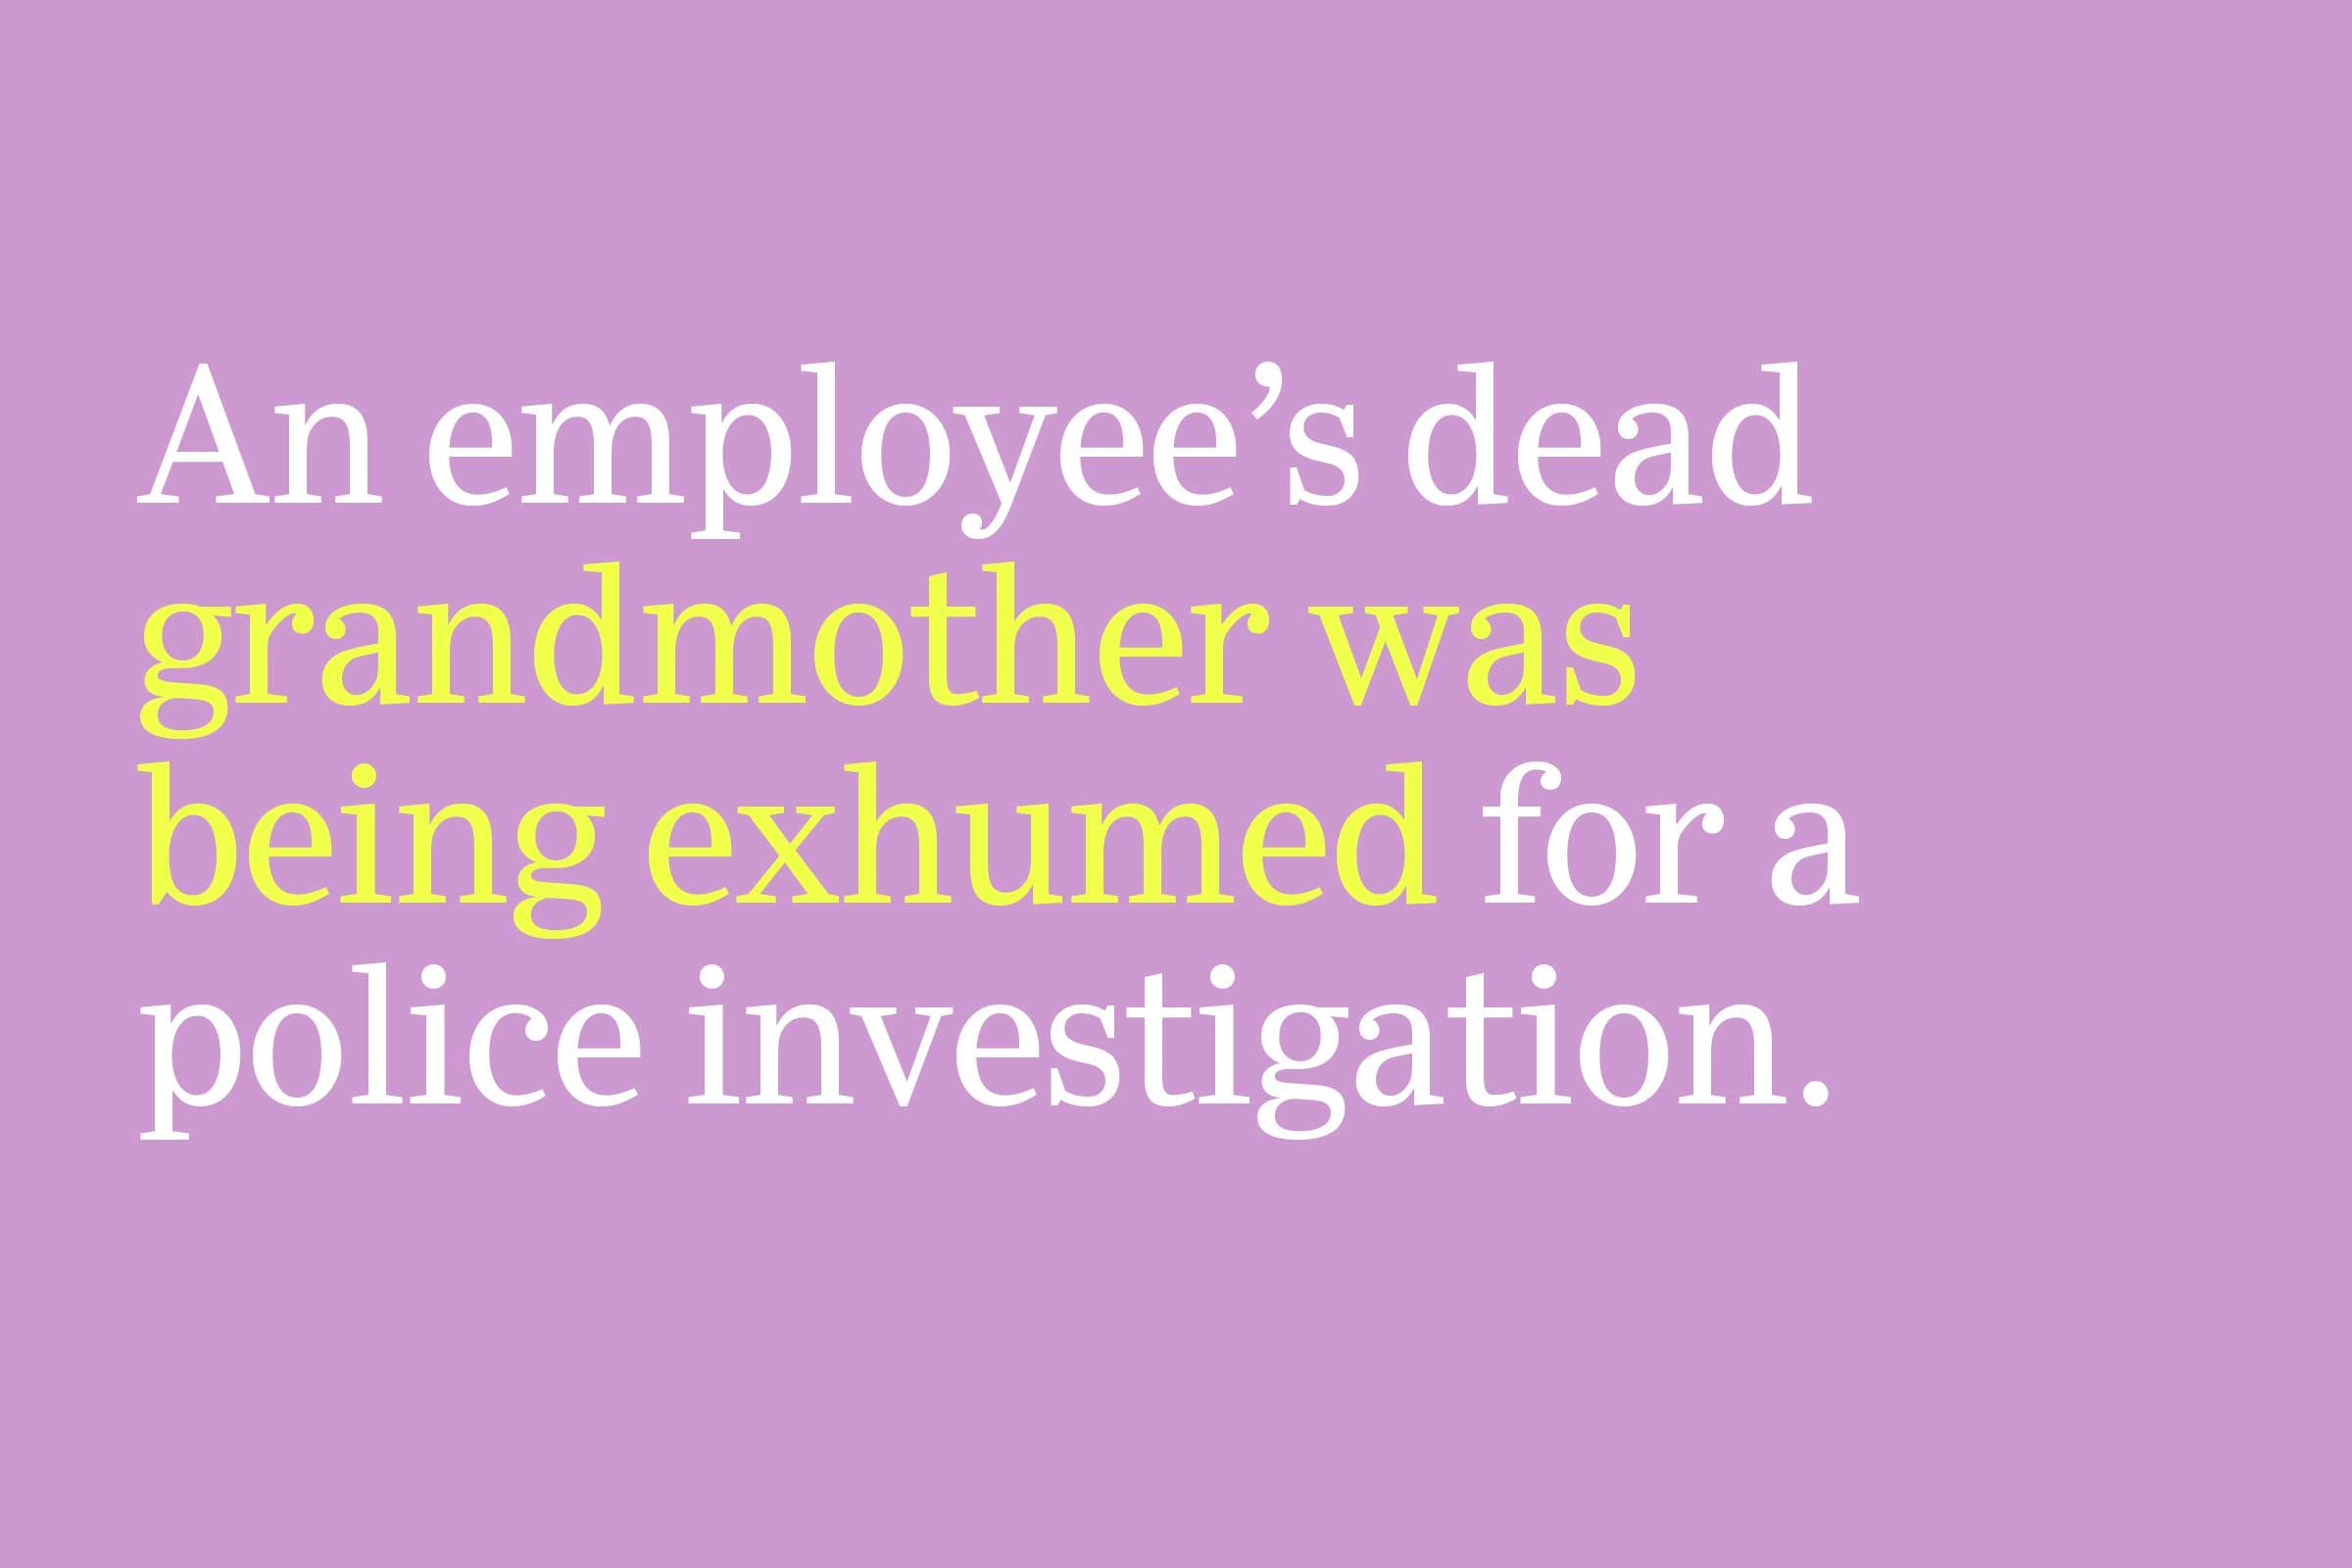 grandmother was being exhumed